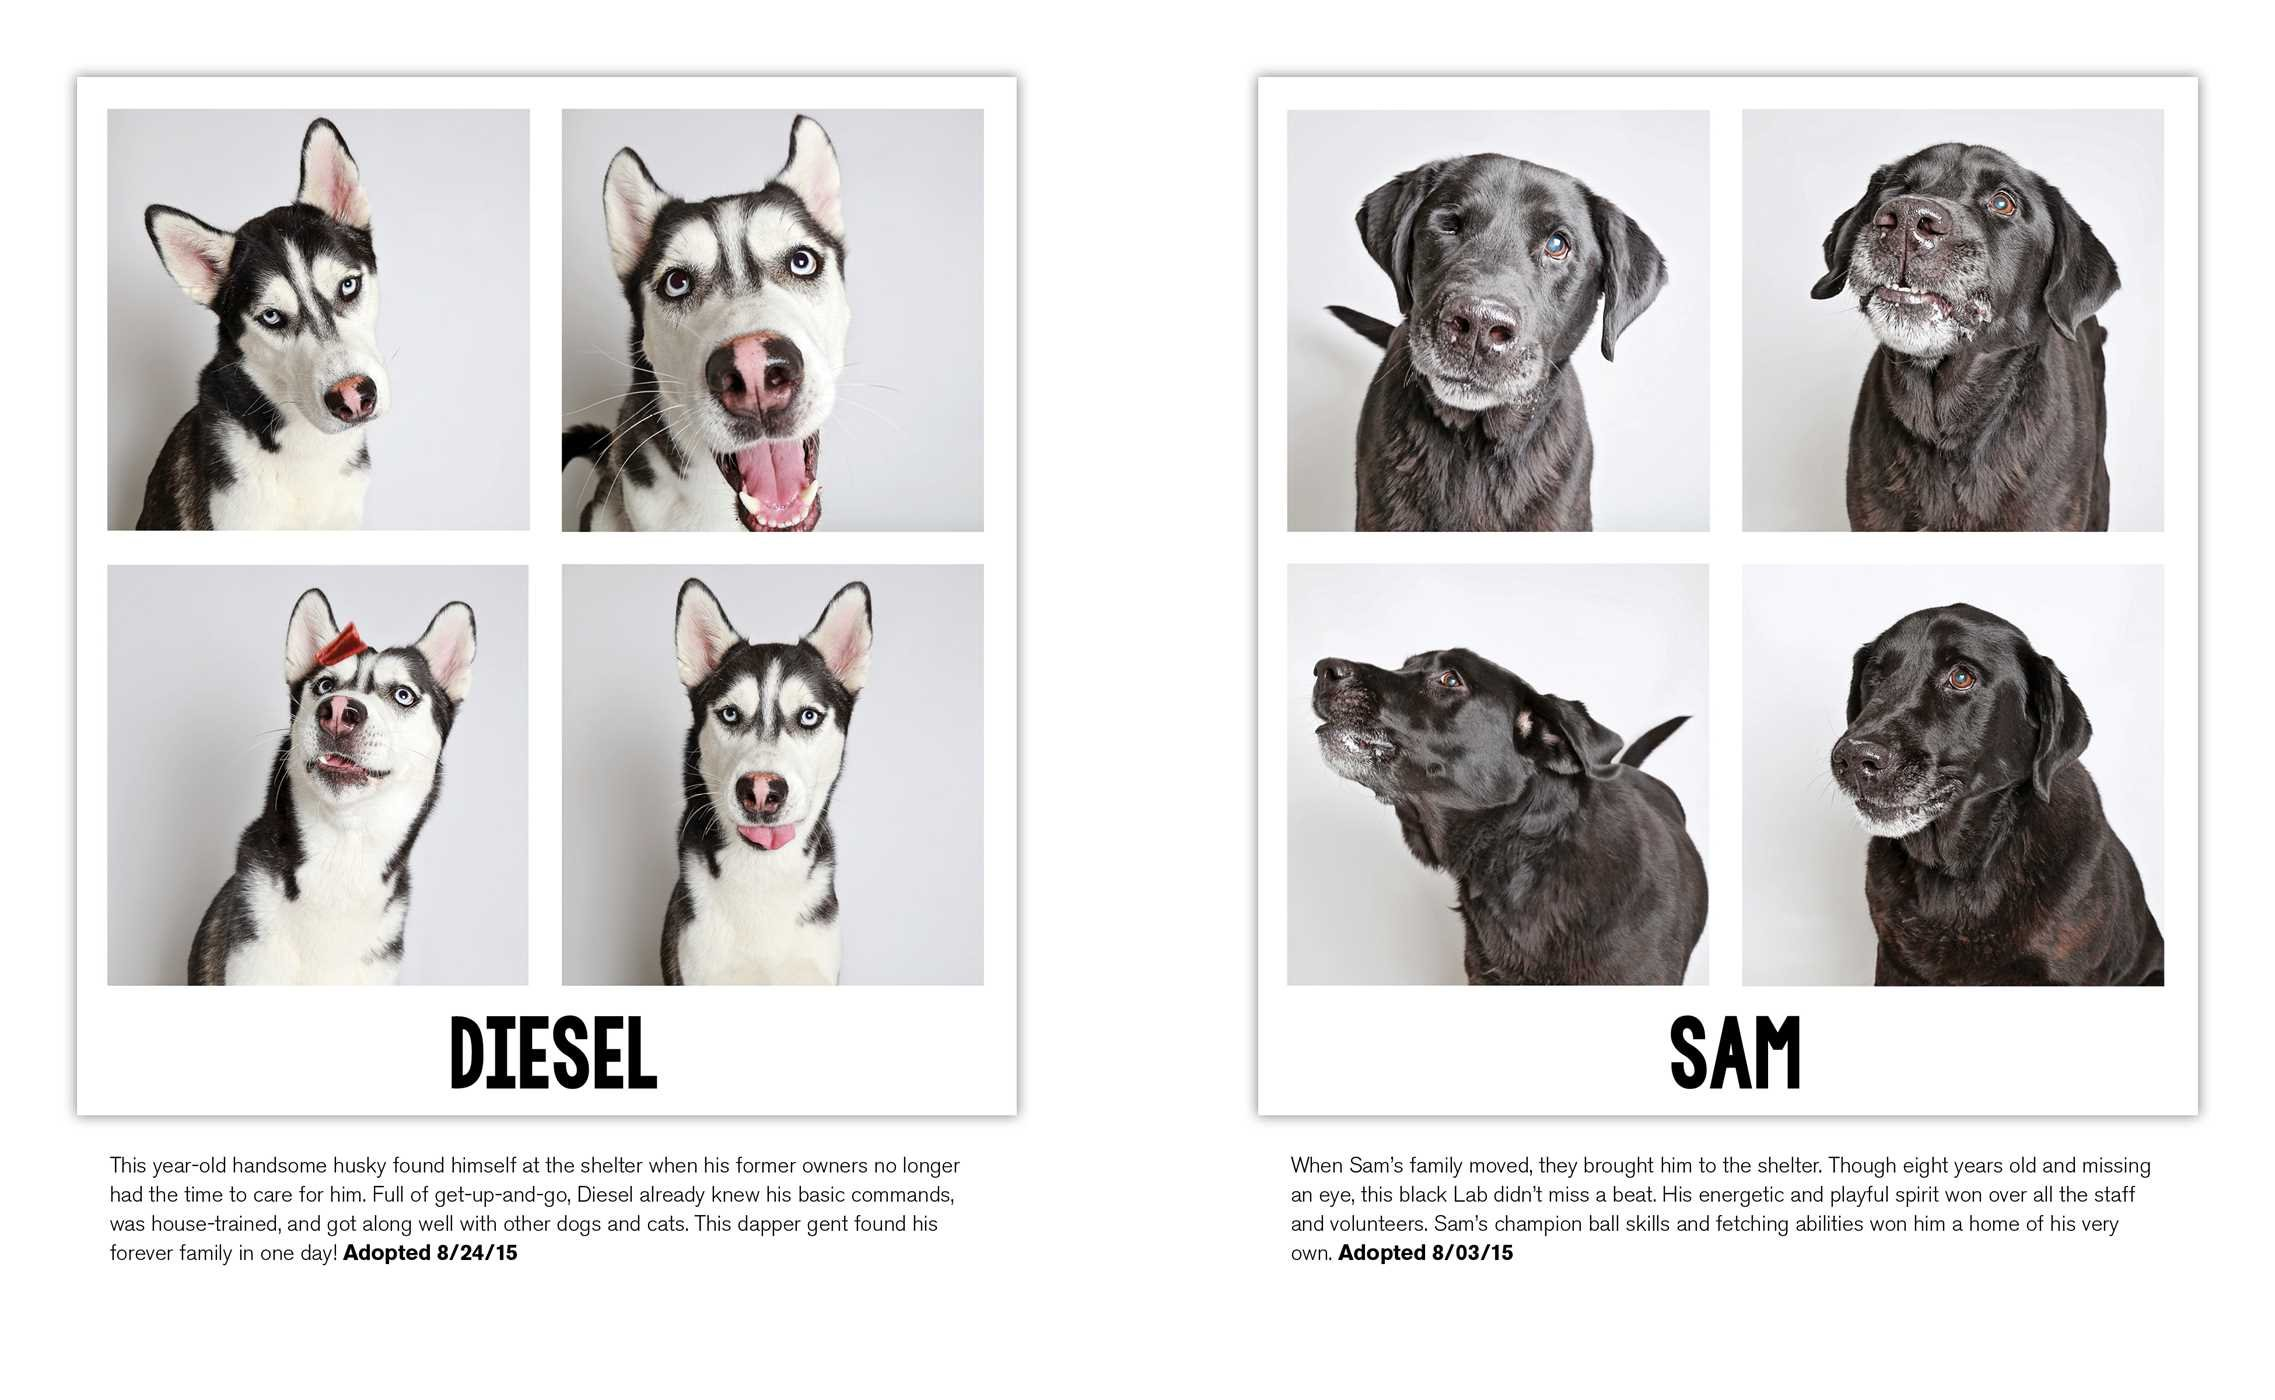 diesel and sam shelter dogs in a photo booth guinnevere shuster